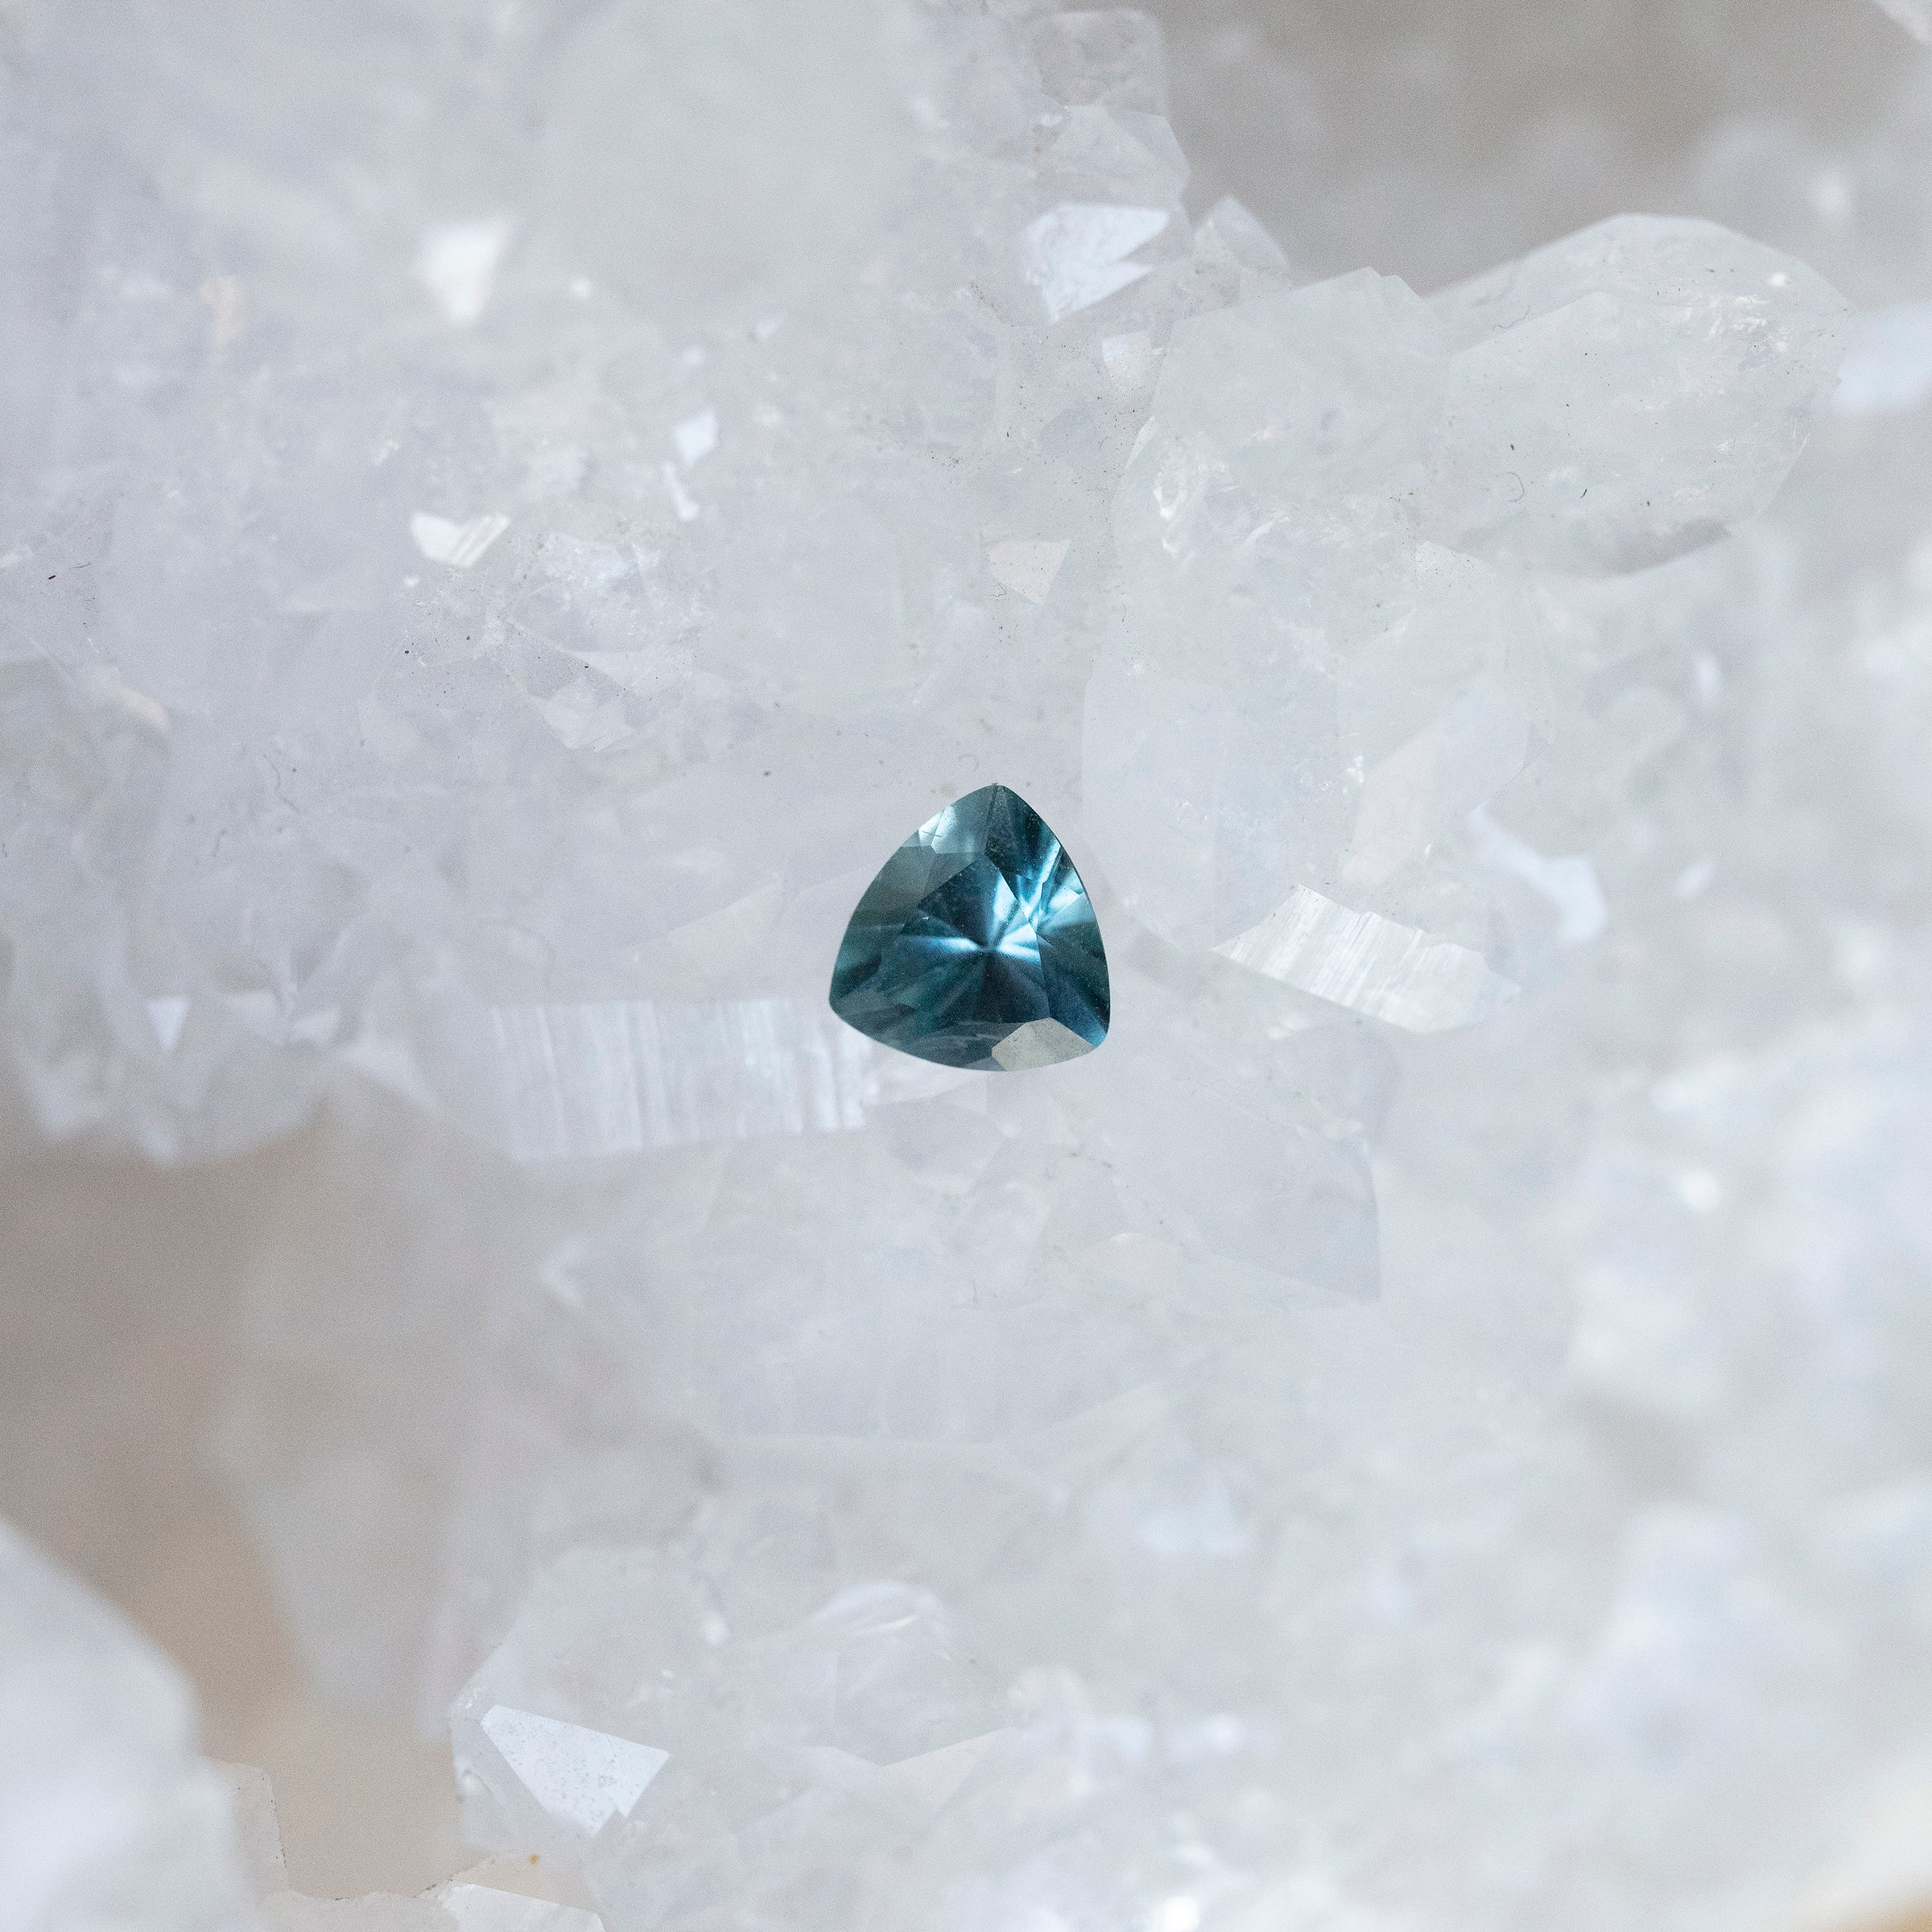 Trillion Cut 0.61 Carat Light Blue Montana Sapphire